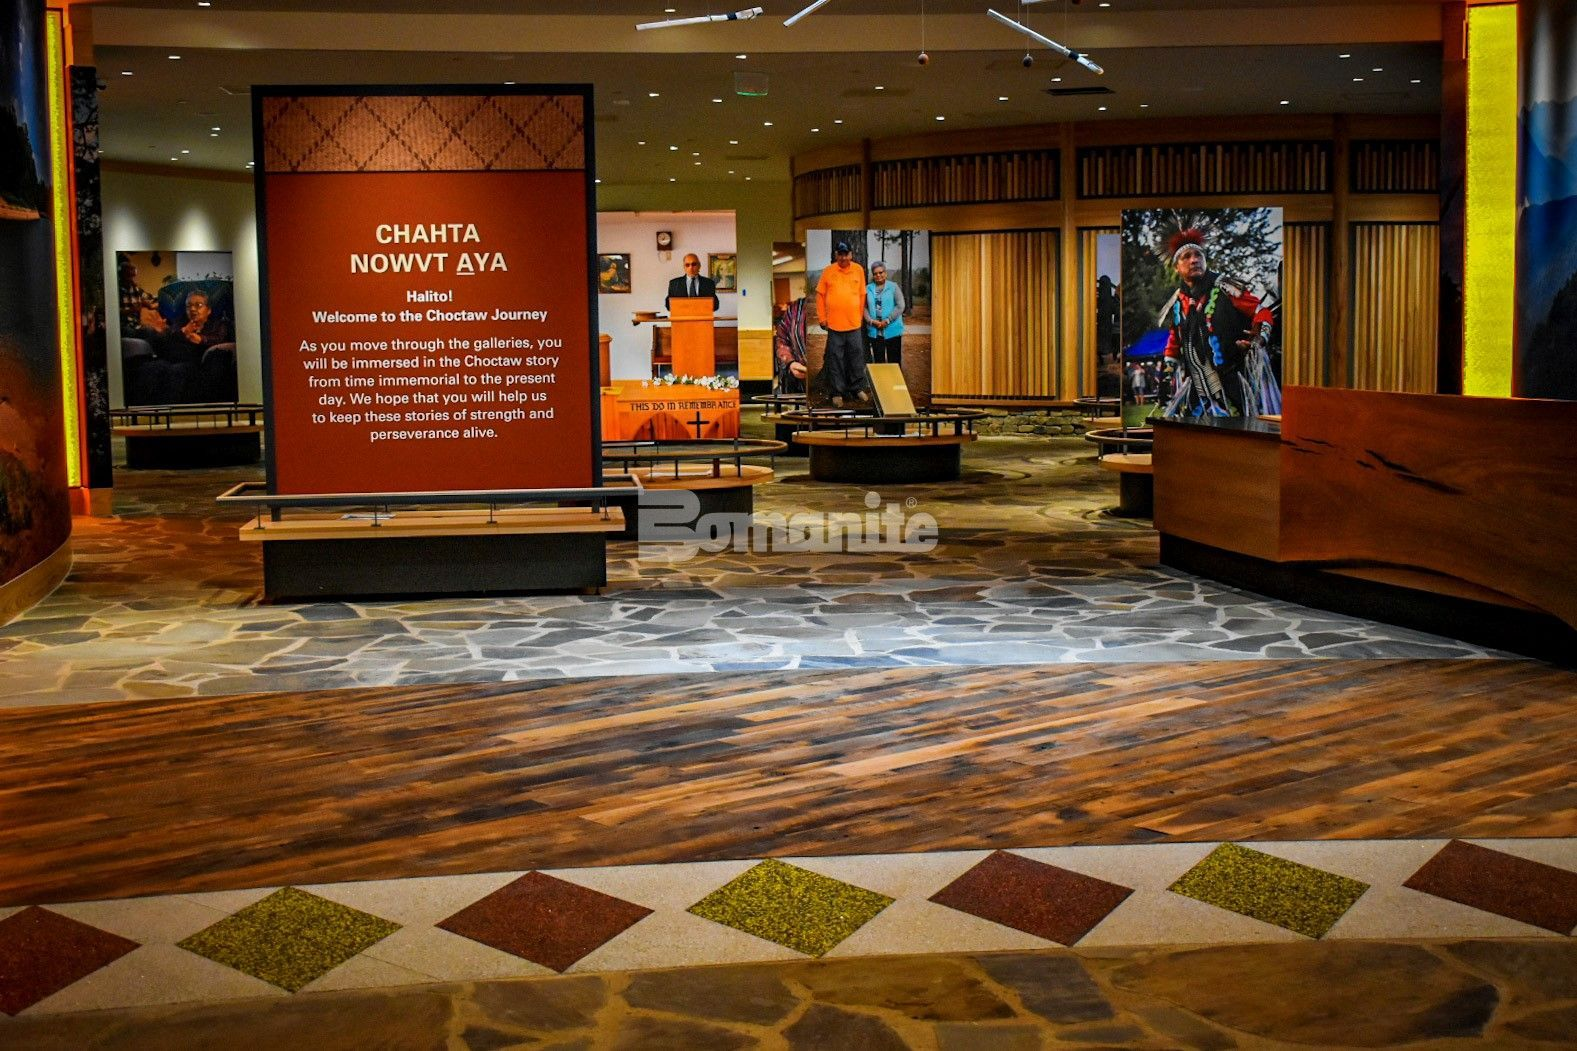 Bomanite of Tulsa, Inc worked with the Choctaw Cultural Center in Durant, OK, to bring to life the art and design for the interior entrance flooring with the Bomanite Revealed and Bomanite Sandscape Exposed Aggregate Systems.